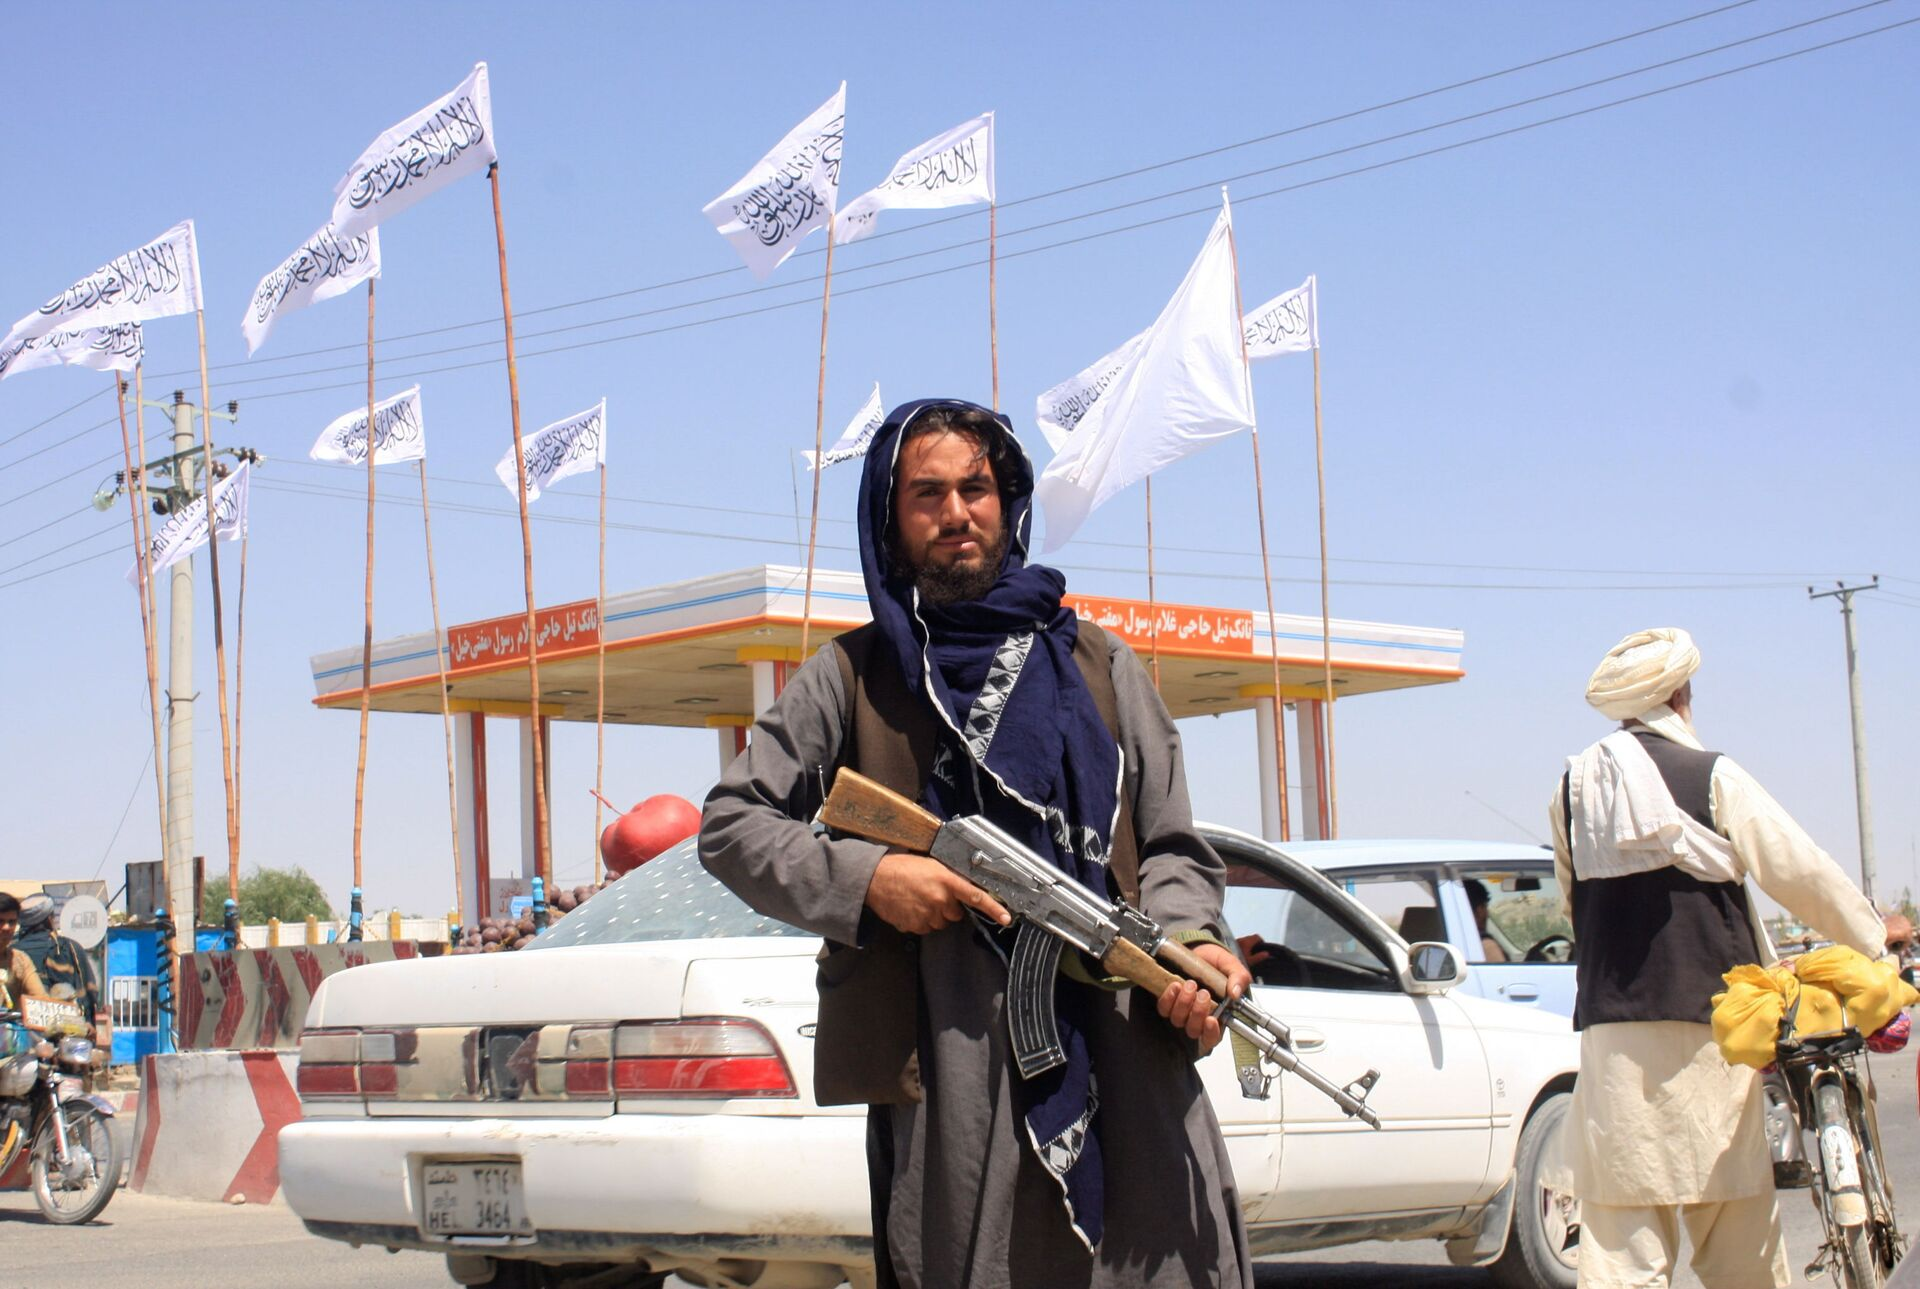 A Taliban fighter looks on as he stands at the city of Ghazni - Sputnik International, 1920, 07.09.2021